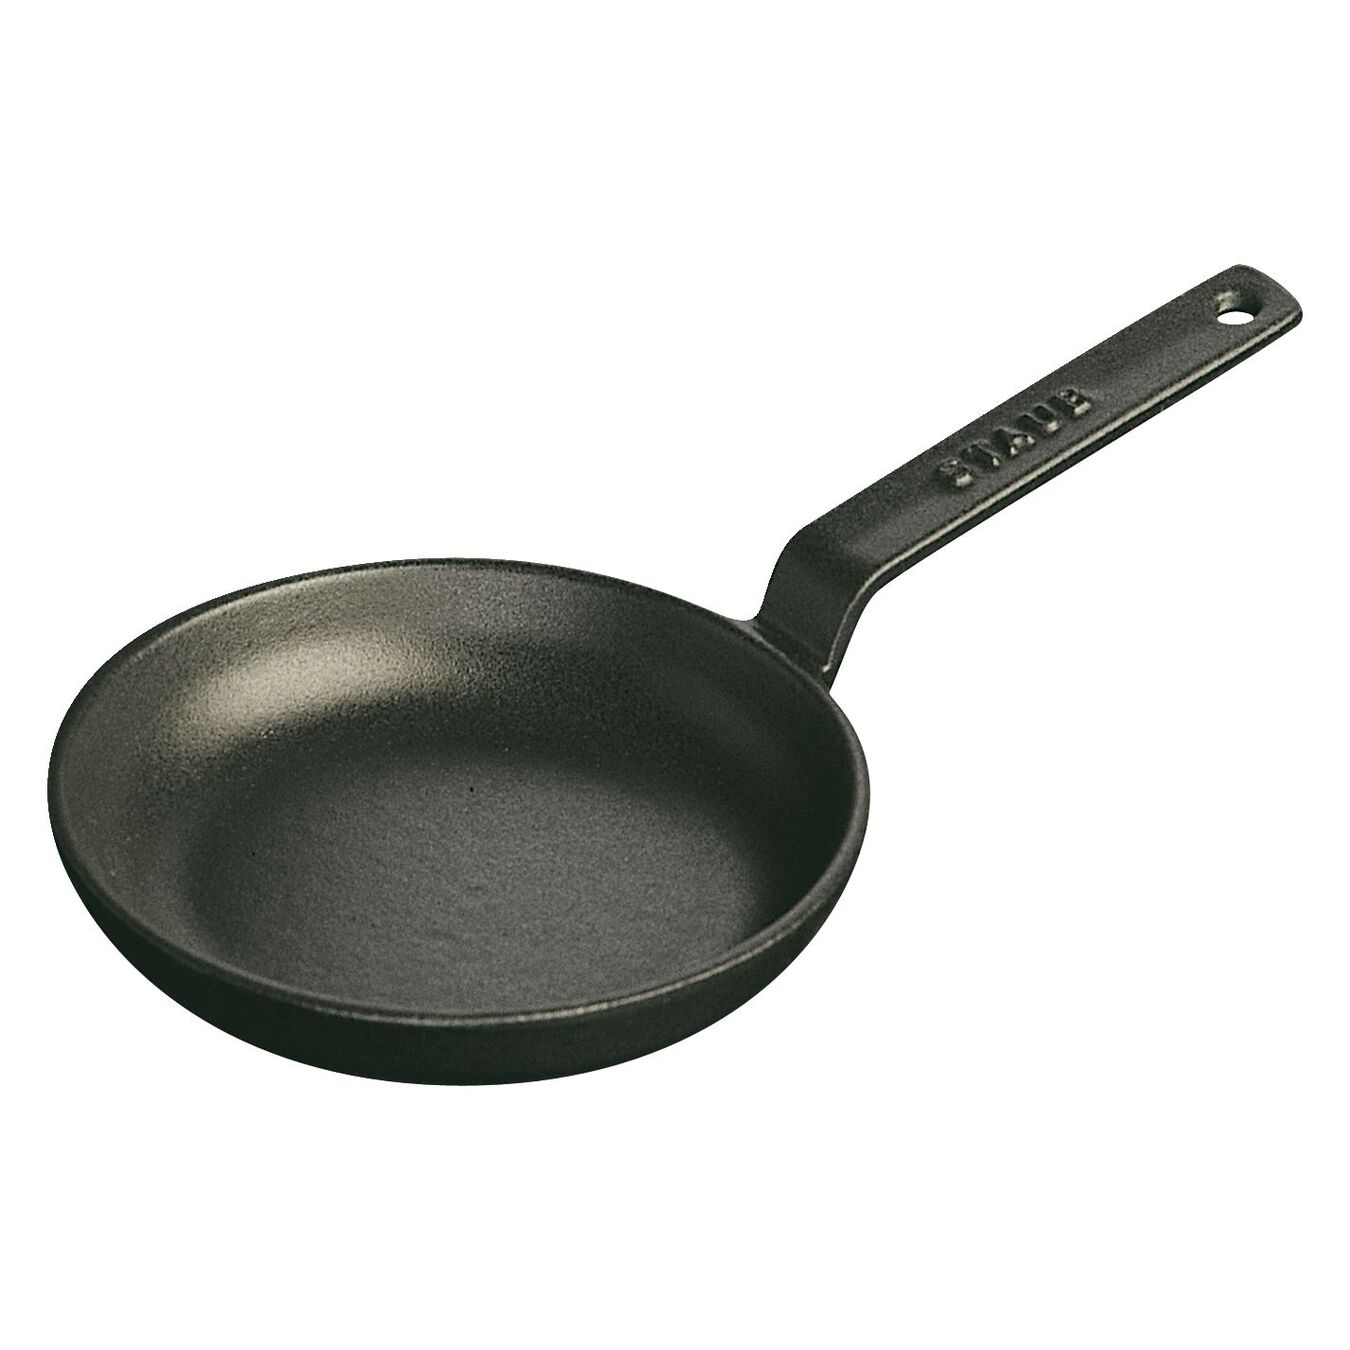 12 cm / 4.5 inch Cast iron Frying pan, Black,,large 1